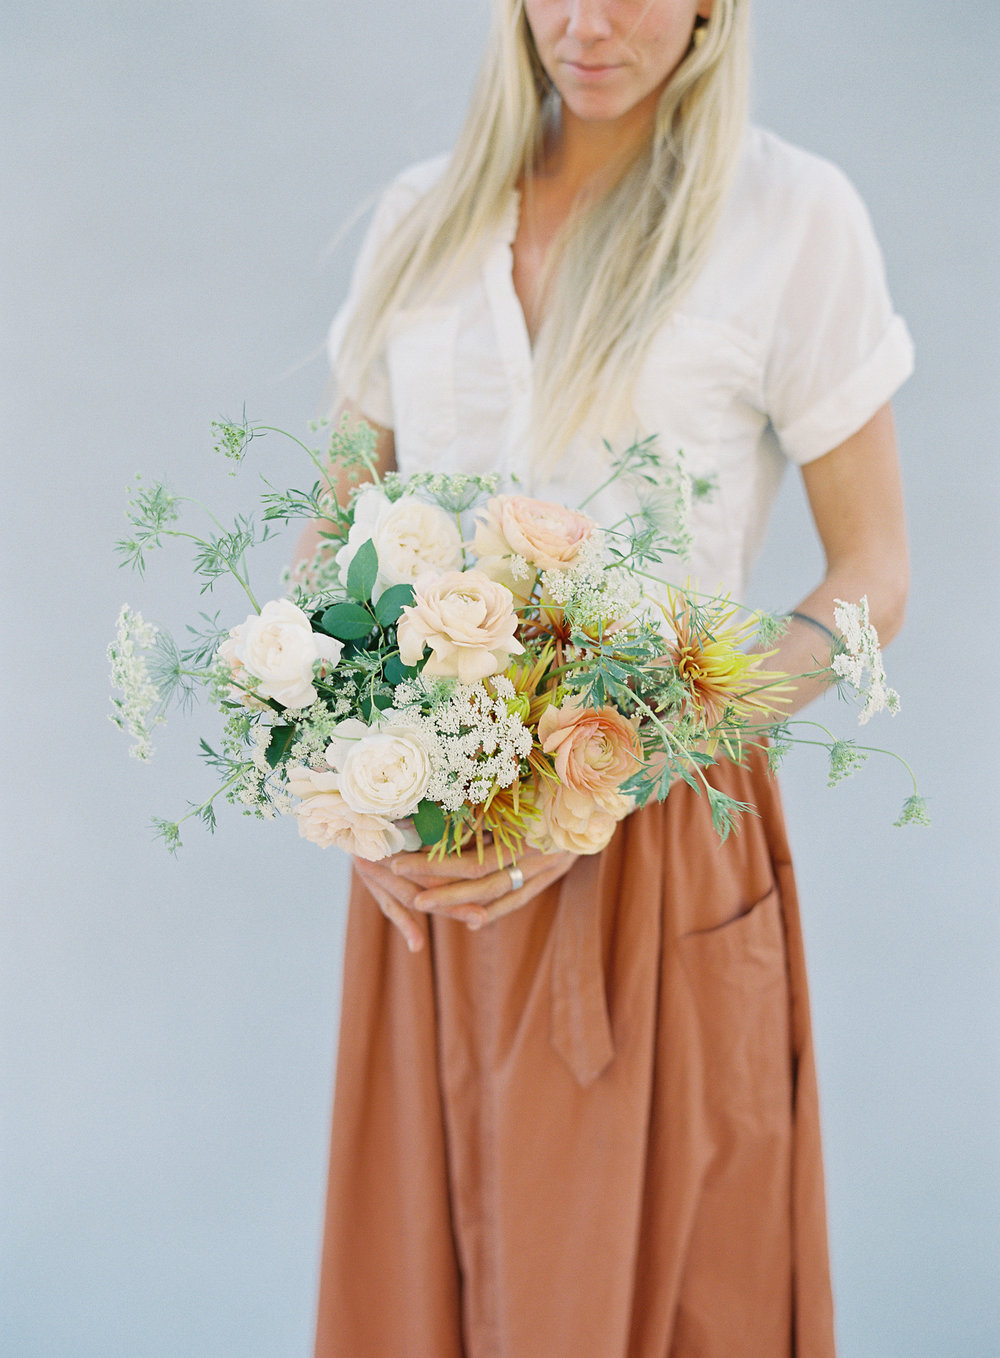 NECTAR + BLOOM || Garden Rose + Ranunculus + Wild Flower Bridal Bouquet in Warm Corals + Neutrals || Nectar + Bloom bridal bouquet || Sposto Photography || #fineartweddingflowers #fineartfloraldesign #fineartwedding #sandiegoweddingflorist #sandiegoflorist  #sandiegofloraldesigner #fineartweddingbouquet #bridalbouquet #bridalstyle #romanticwedding #weddingdetails #modernbride #modernbrialbouquet #bohemian #elegantbride #weddingfashion #fallbridalbouquet #autumbridalbouquet #fallflowers #gardenroses #romanticwedding #romanticbridalbouquet